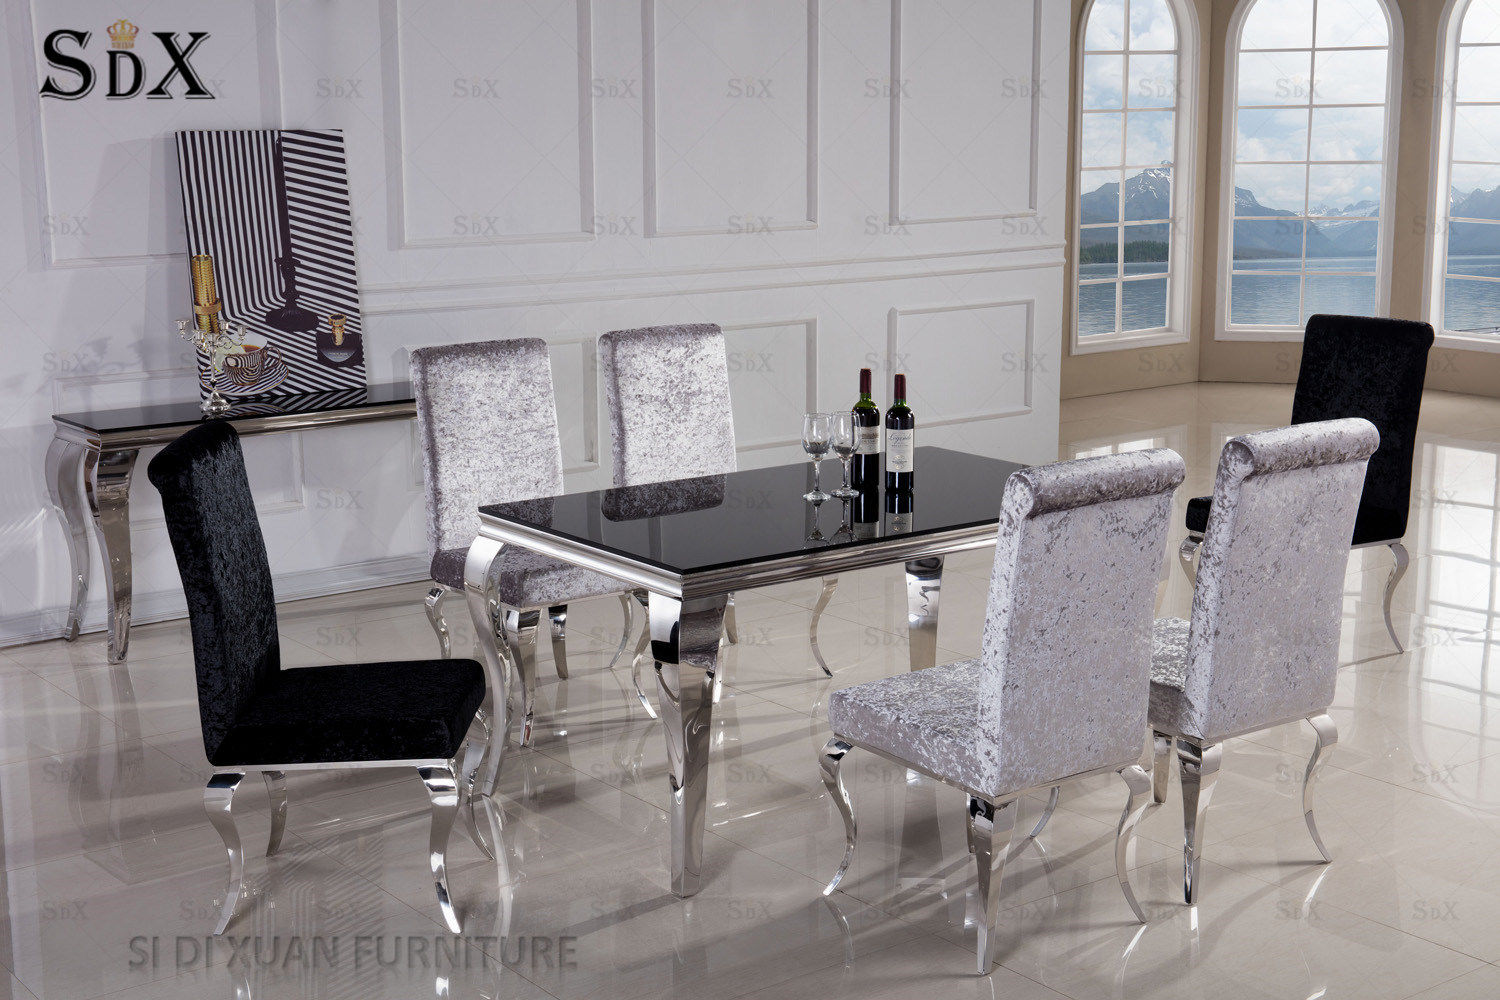 Hot Item Modern Royal Glass Top Stainless Steel Dining Table Design For Banquet Hall